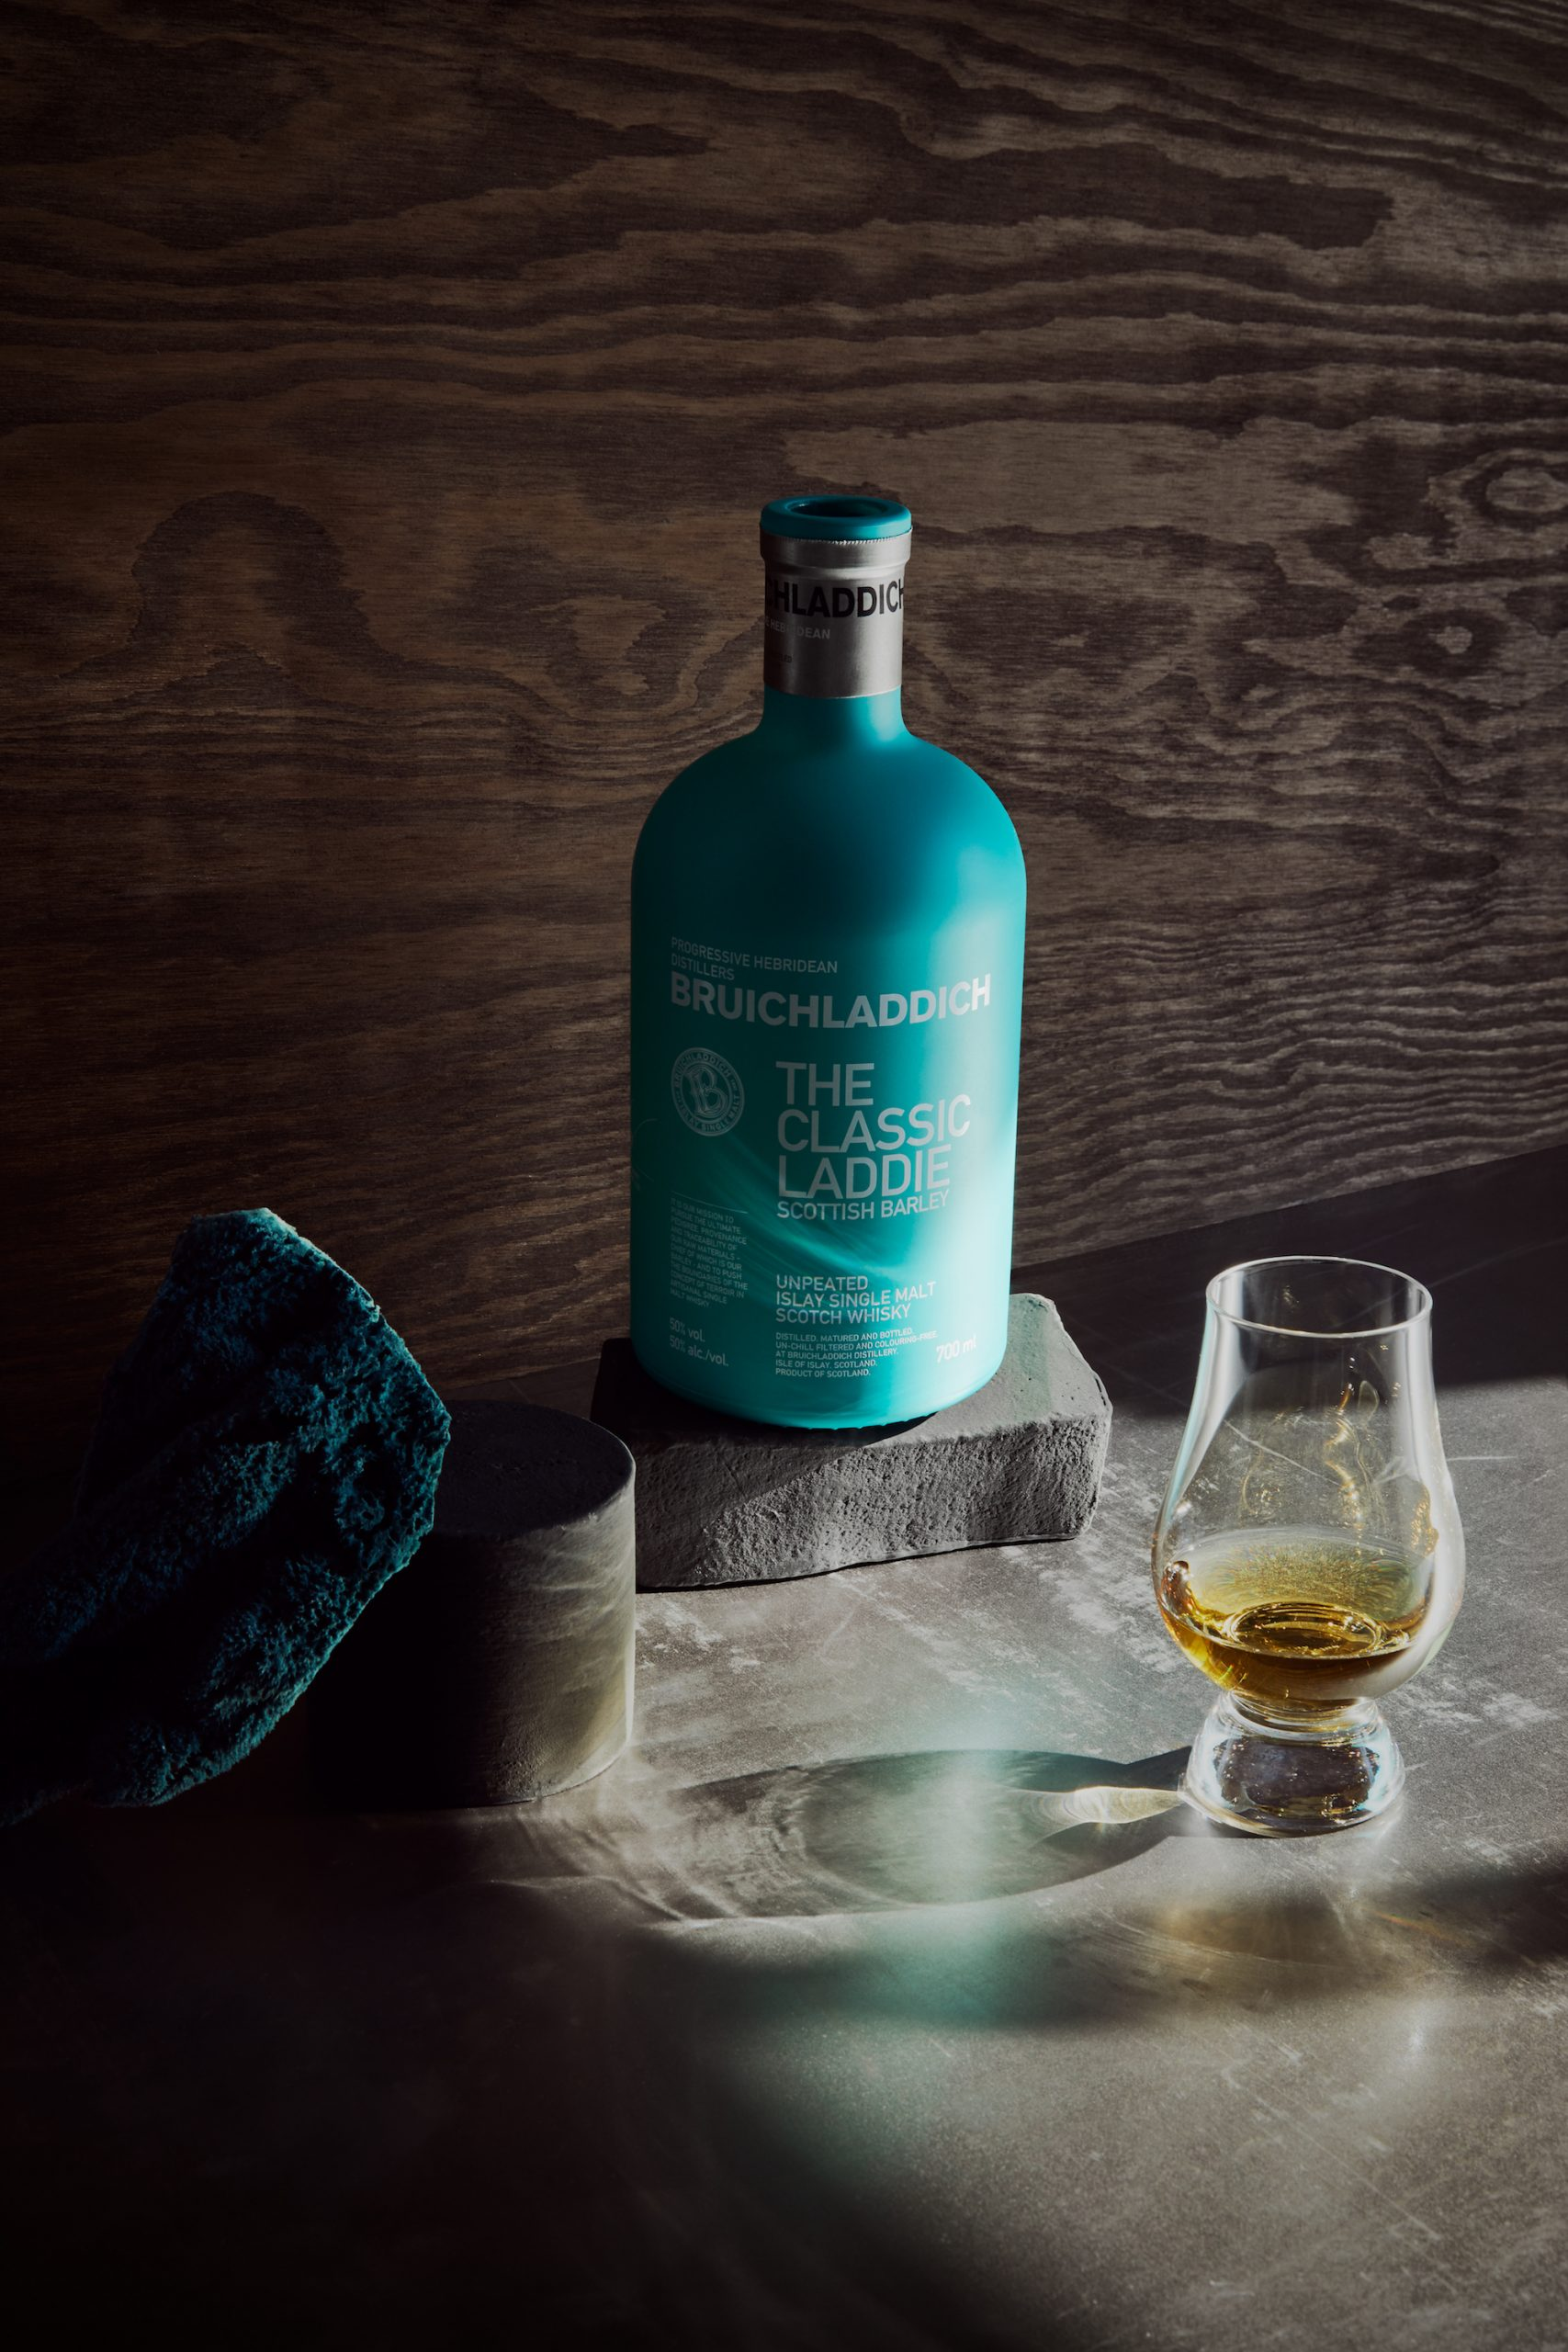 Whisky Distillery Bruichladdich Drop Their Hidden Measures Campaign photo